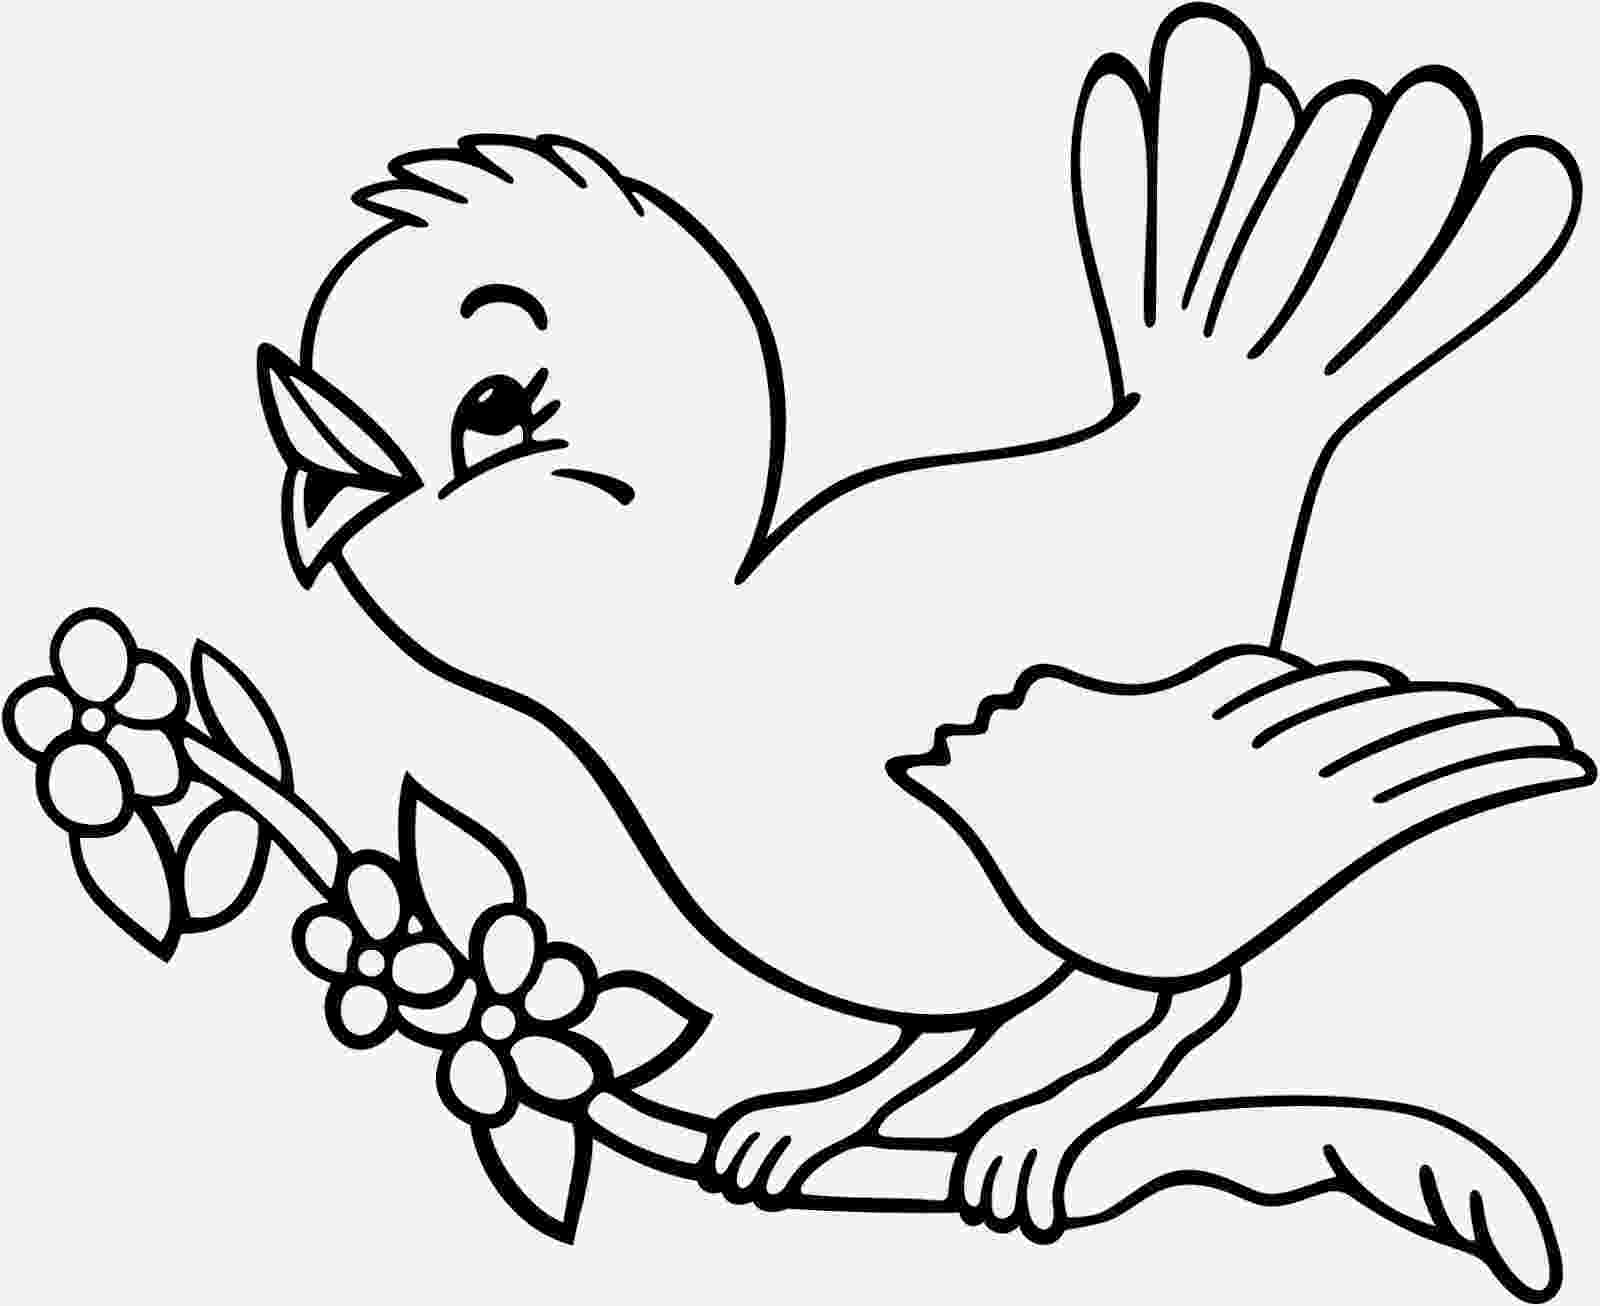 bird coloring bird coloring pages to download and print for free bird coloring